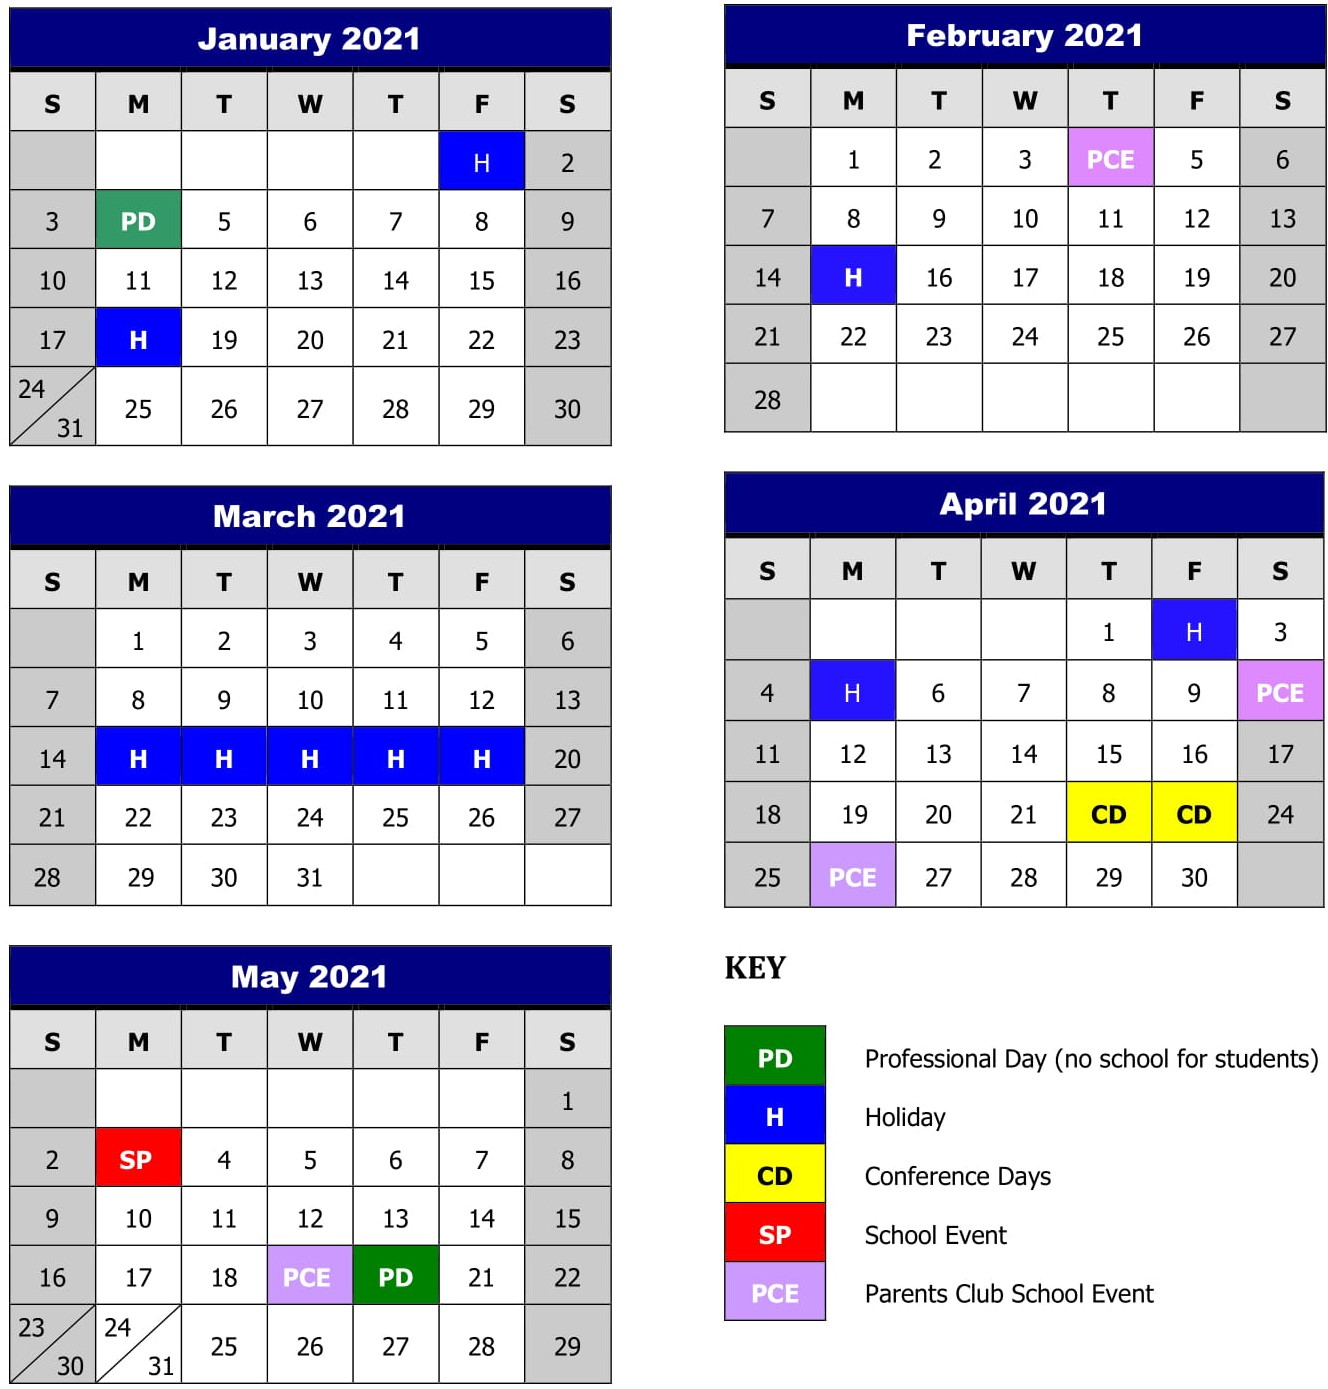 Uiuc Calendar Spring 2022.U I U C 2 0 2 1 S P R I N G C A L E N D A R Zonealarm Results